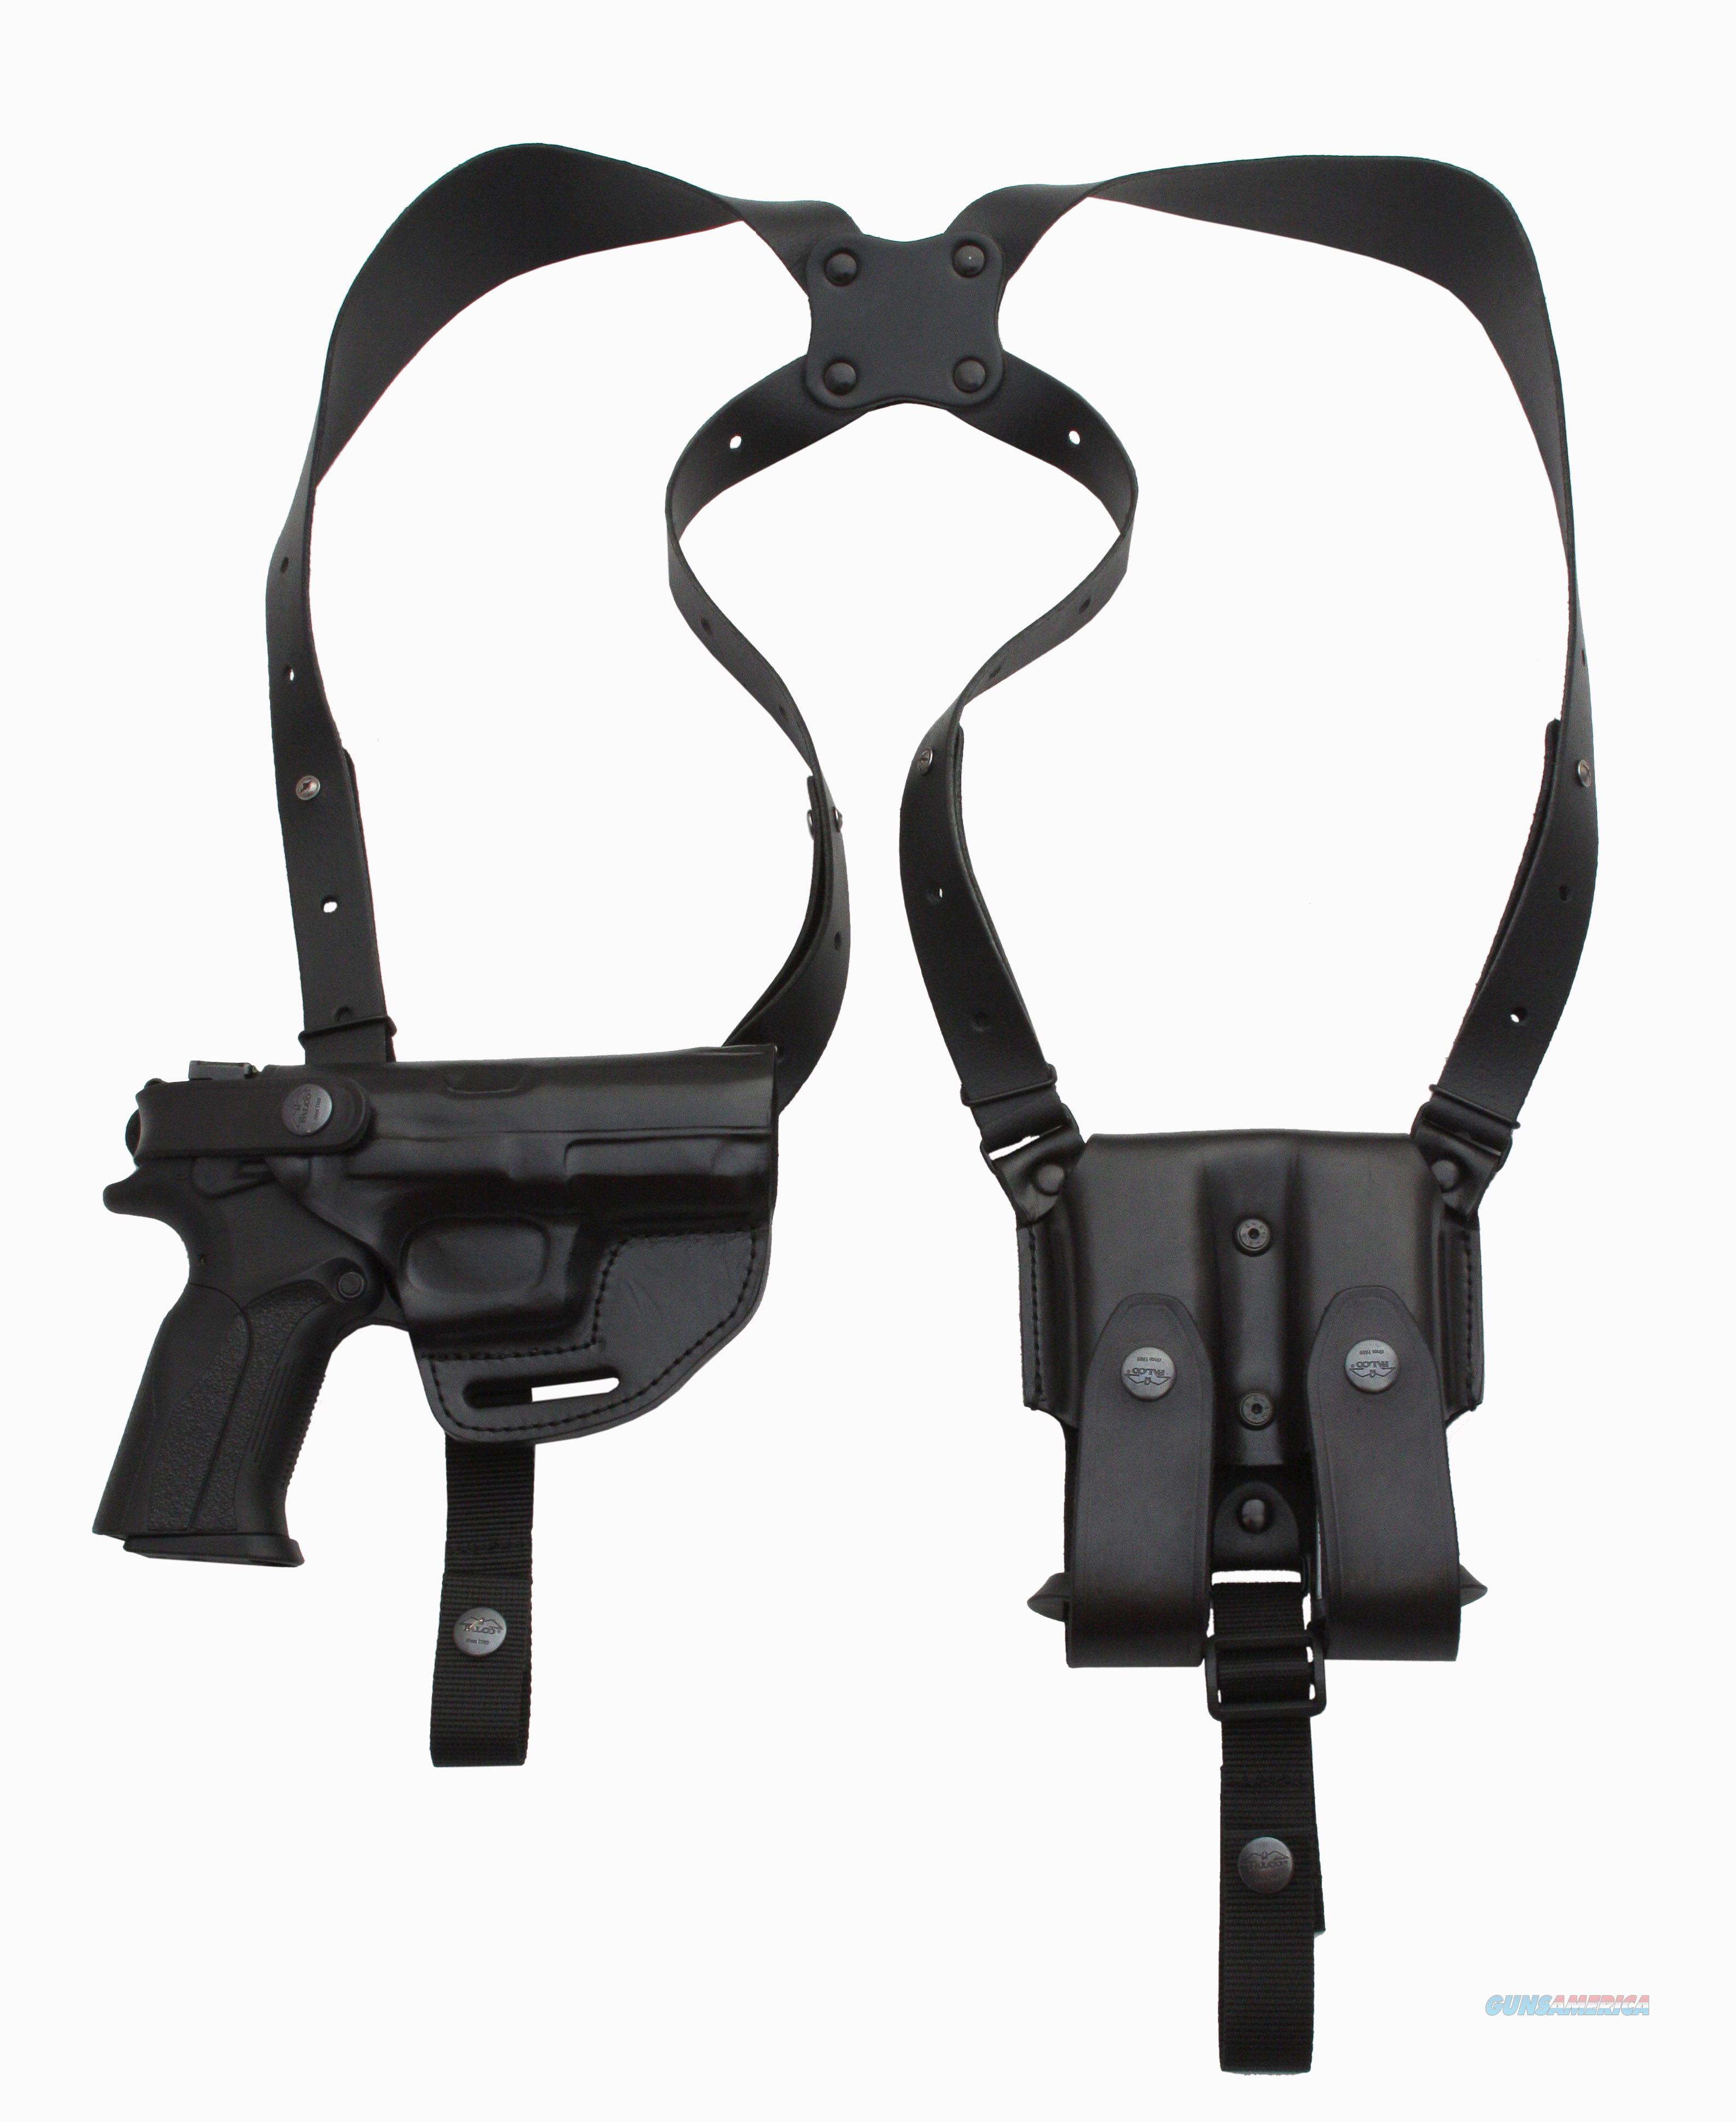 "Leather Shoulder Holster System Colt 1911 5""  Non-Guns > Holsters and Gunleather > Shoulder Holsters"